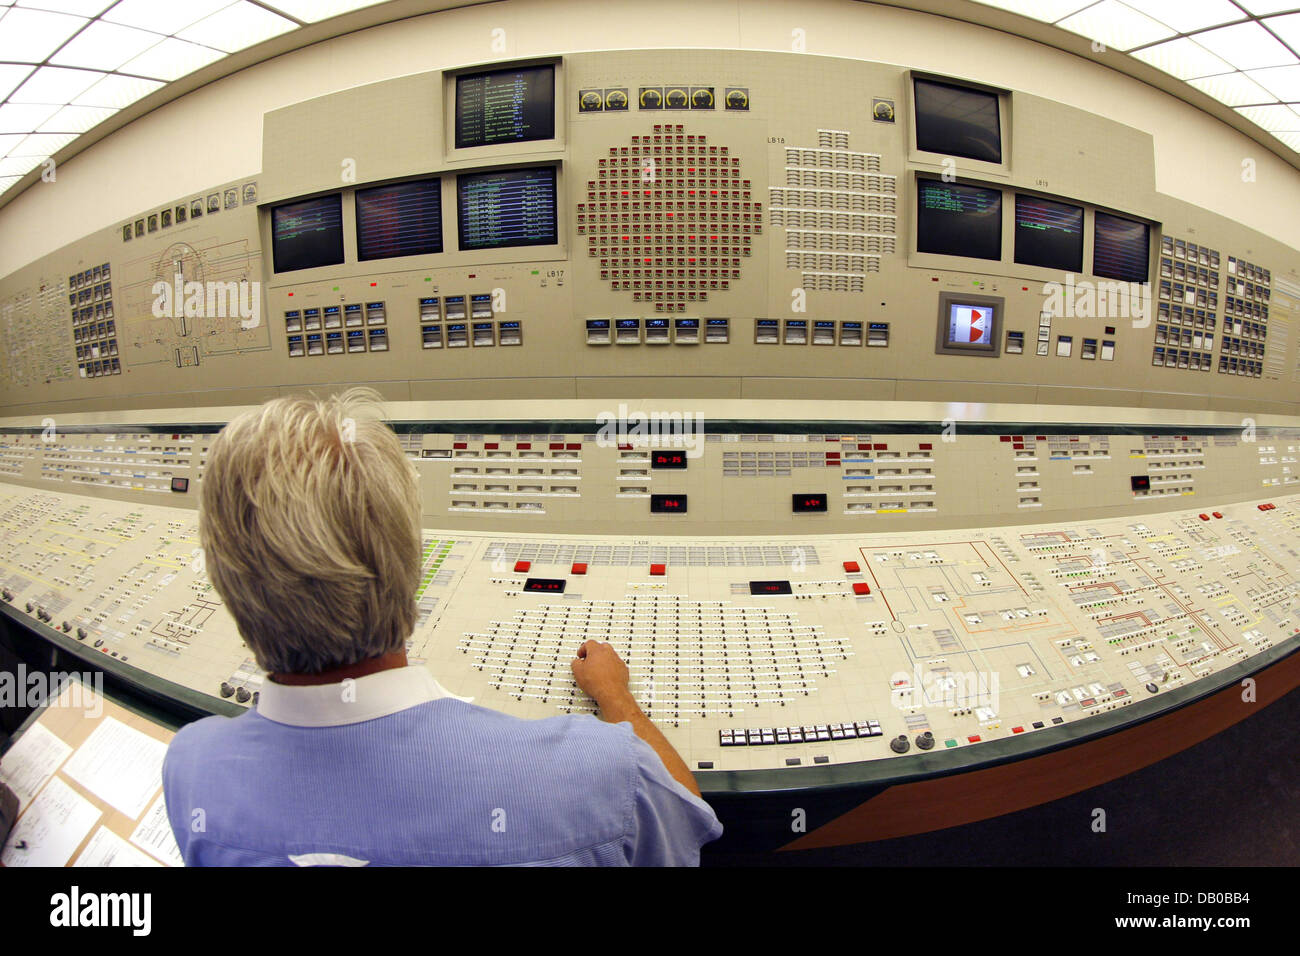 Kai Detlefsen, coach for reactor operators sits in an exact simulator of the reactor control stand at the nuclear Stock Photo